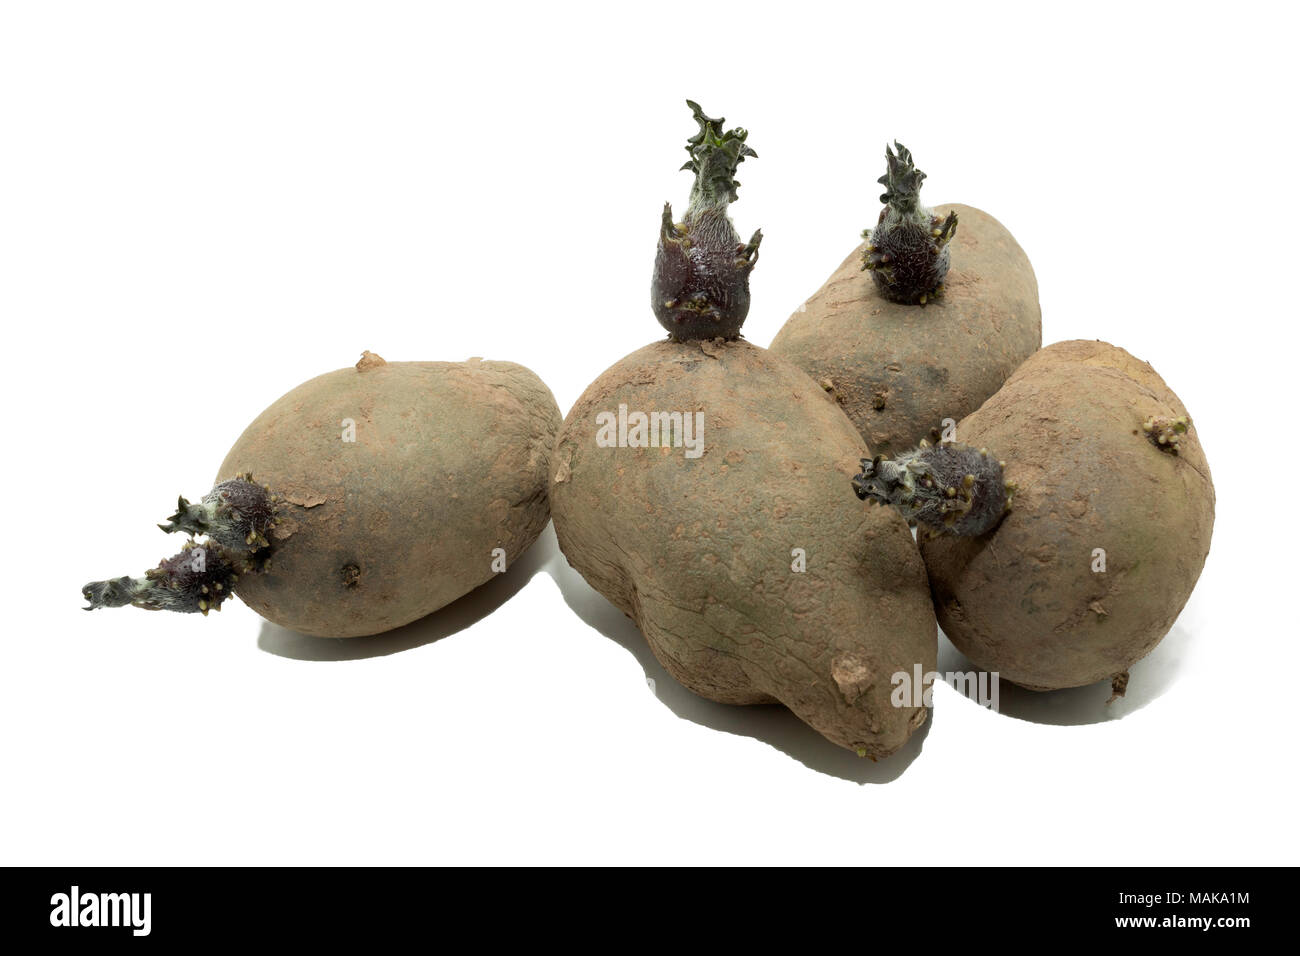 Sprouting Charlotte seed potatoes isolated on a white background. Stock Photo